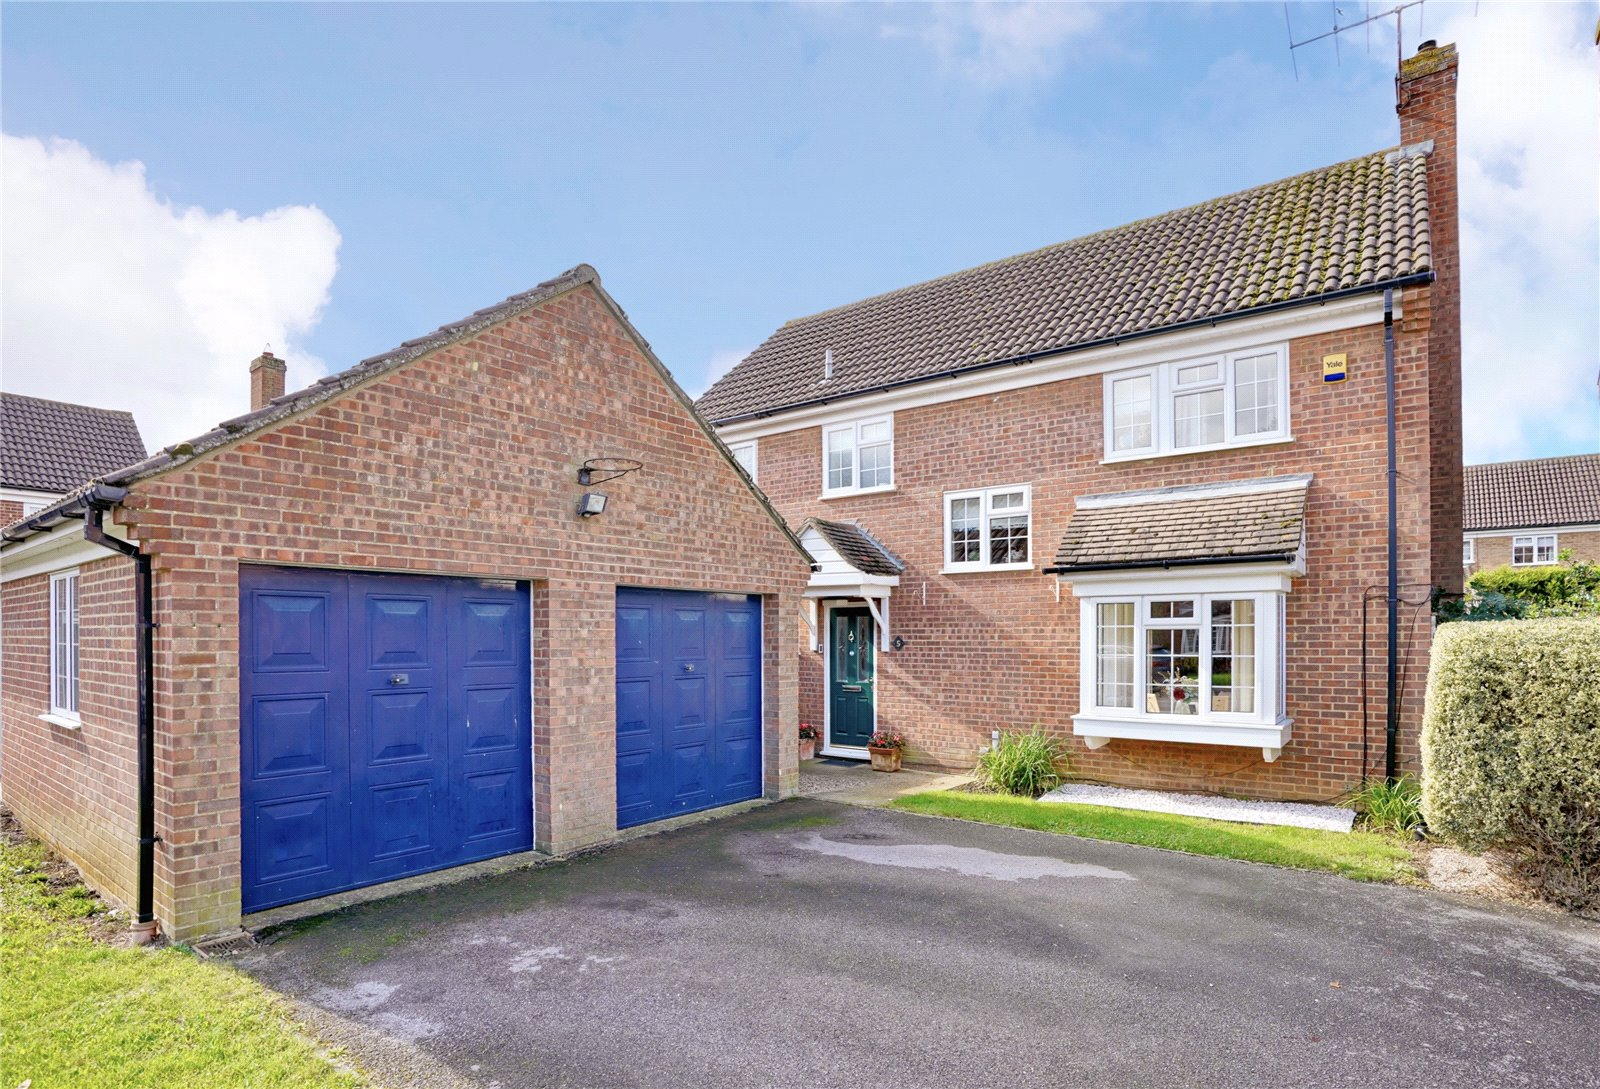 4 bed house for sale in Eaton Socon, PE19 8QG  - Property Image 1